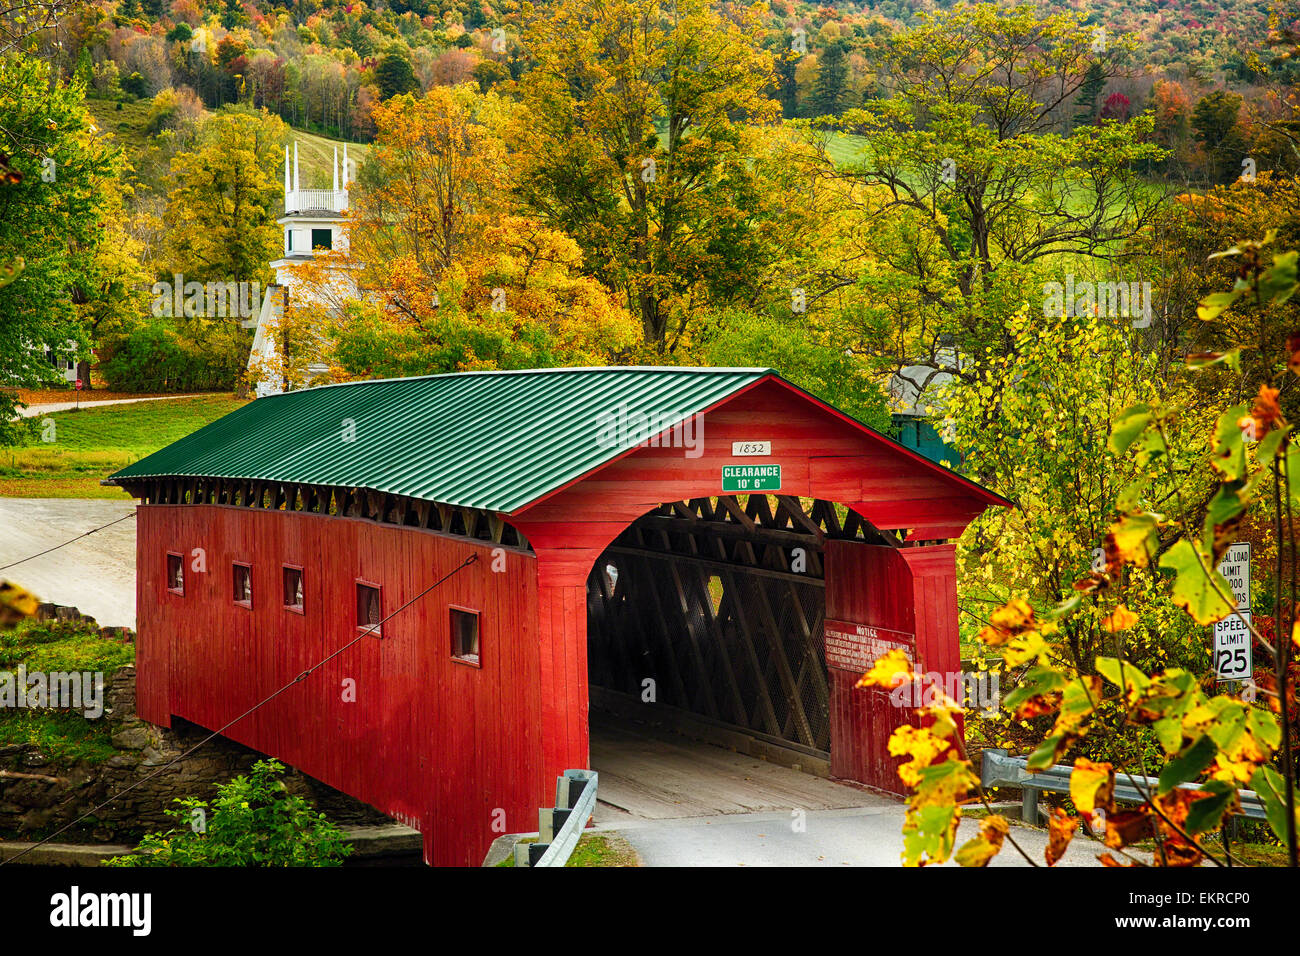 High Angle View of a Covered Bridge with a Church Tower in the Background, West Arlington, Grafton County, Vermont - Stock Image